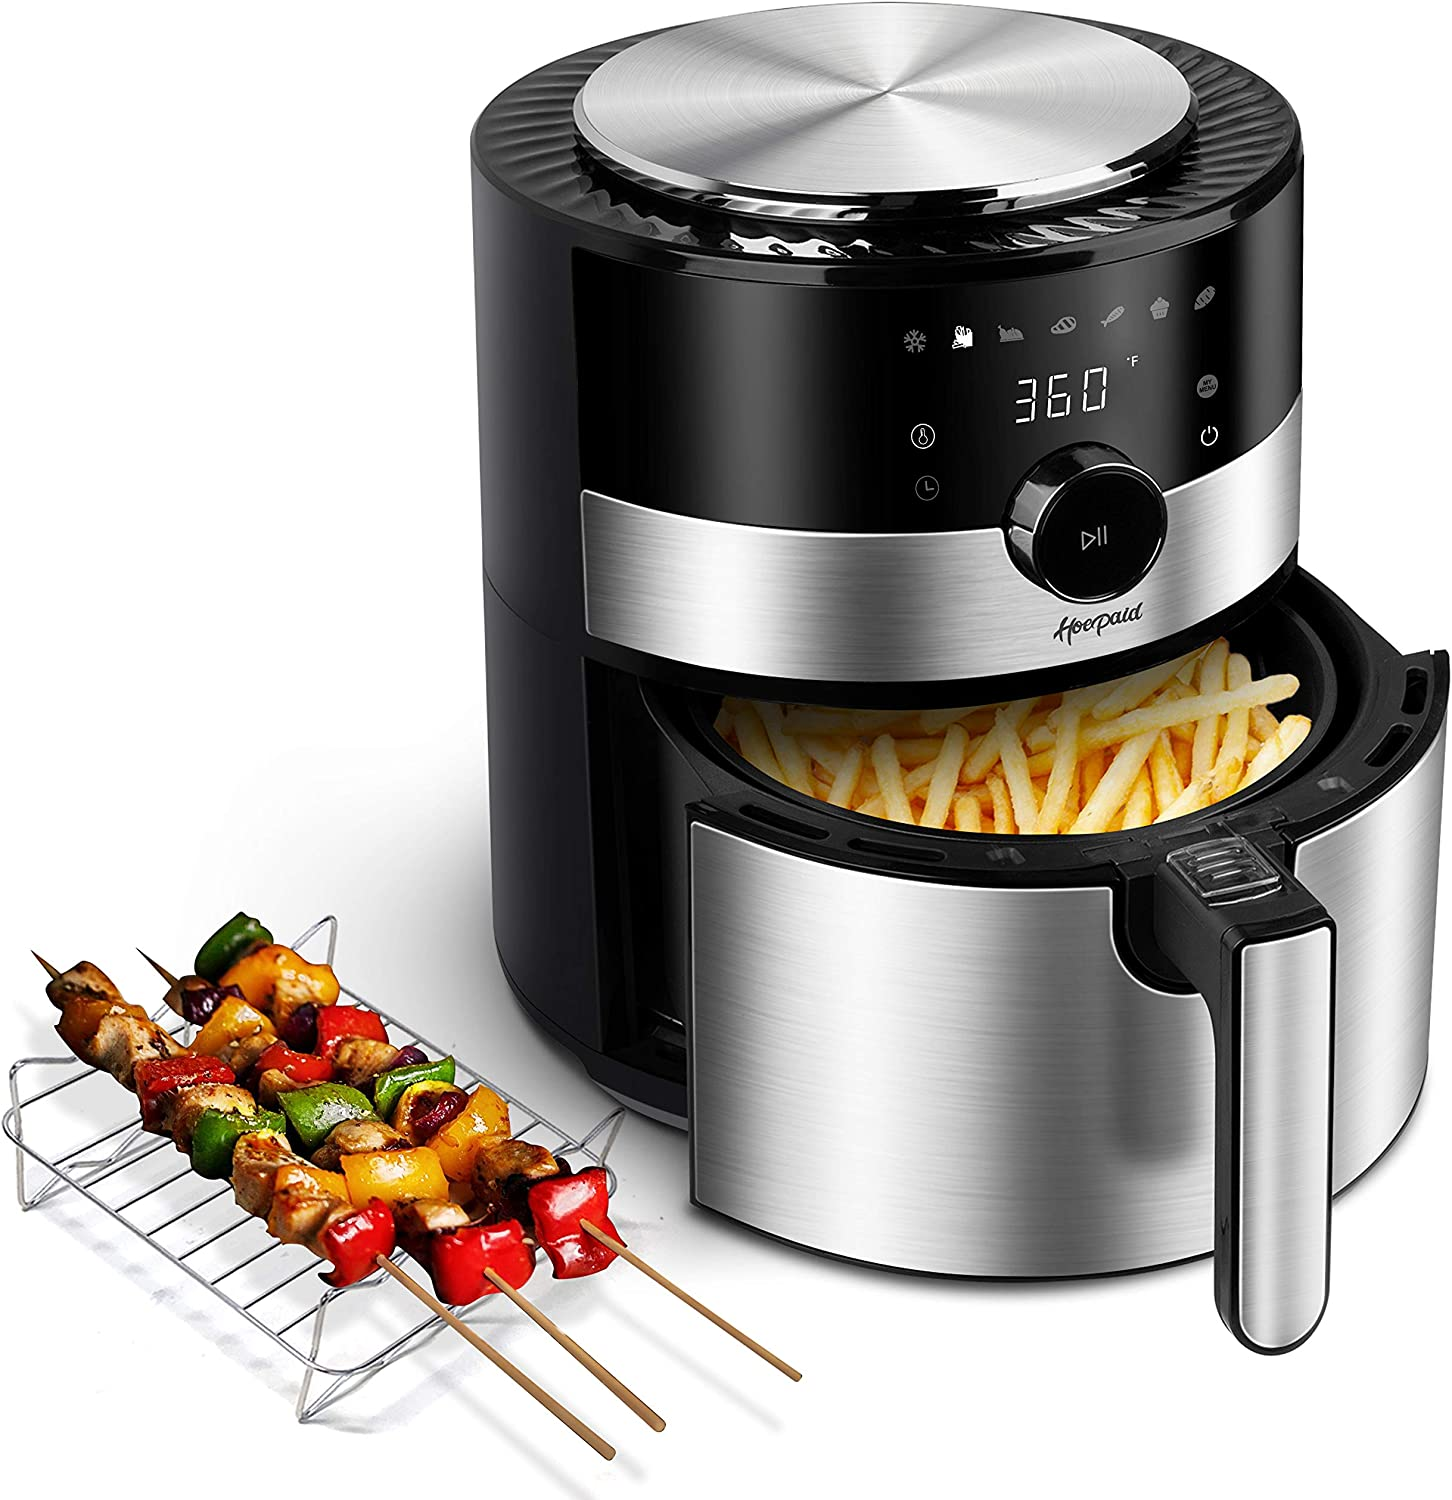 Hoepaid Air Fryer, No Oil Stainless Steel Oven with 7 Preset Modes and Adjustable Temperature Time, Touch Screen and Knob, Non-Stick Basket and Rack Included, 1350W, Black (3.6QT)